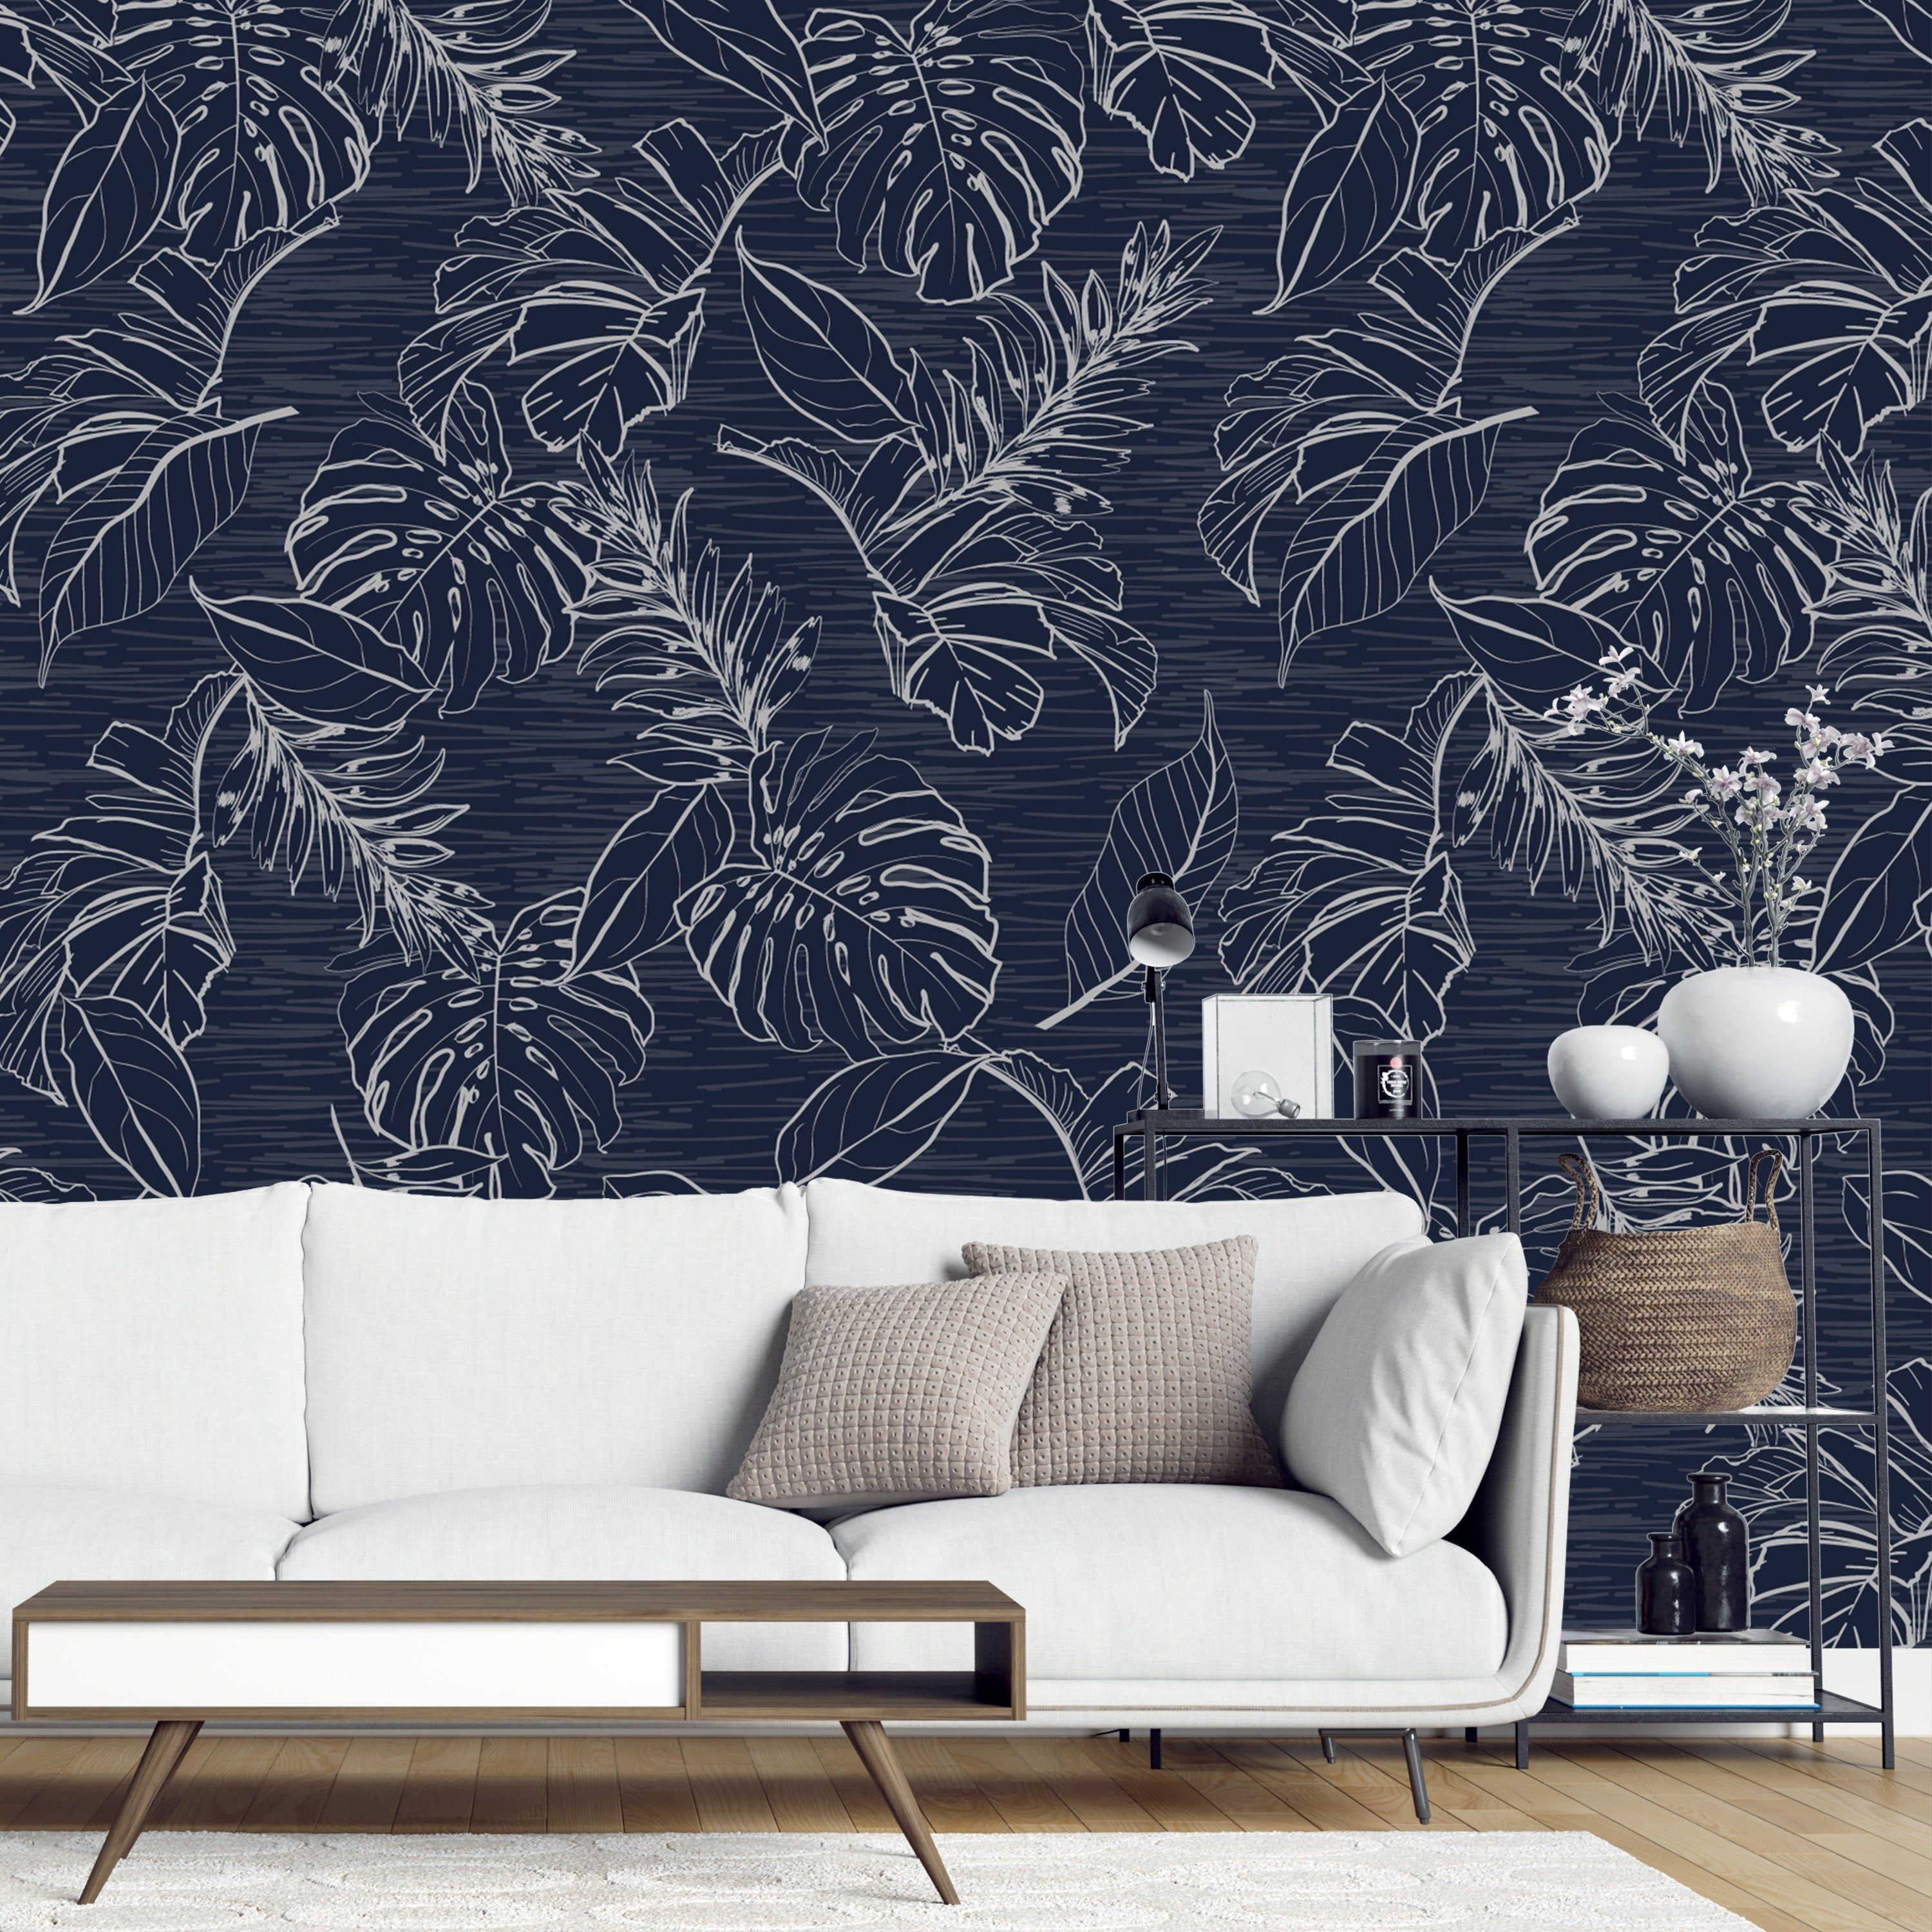 Peel And Stick Removable Wallpaper Dark Blue Monotone Etsy Removable Wallpaper Home Wallpaper Wallpaper Bedroom